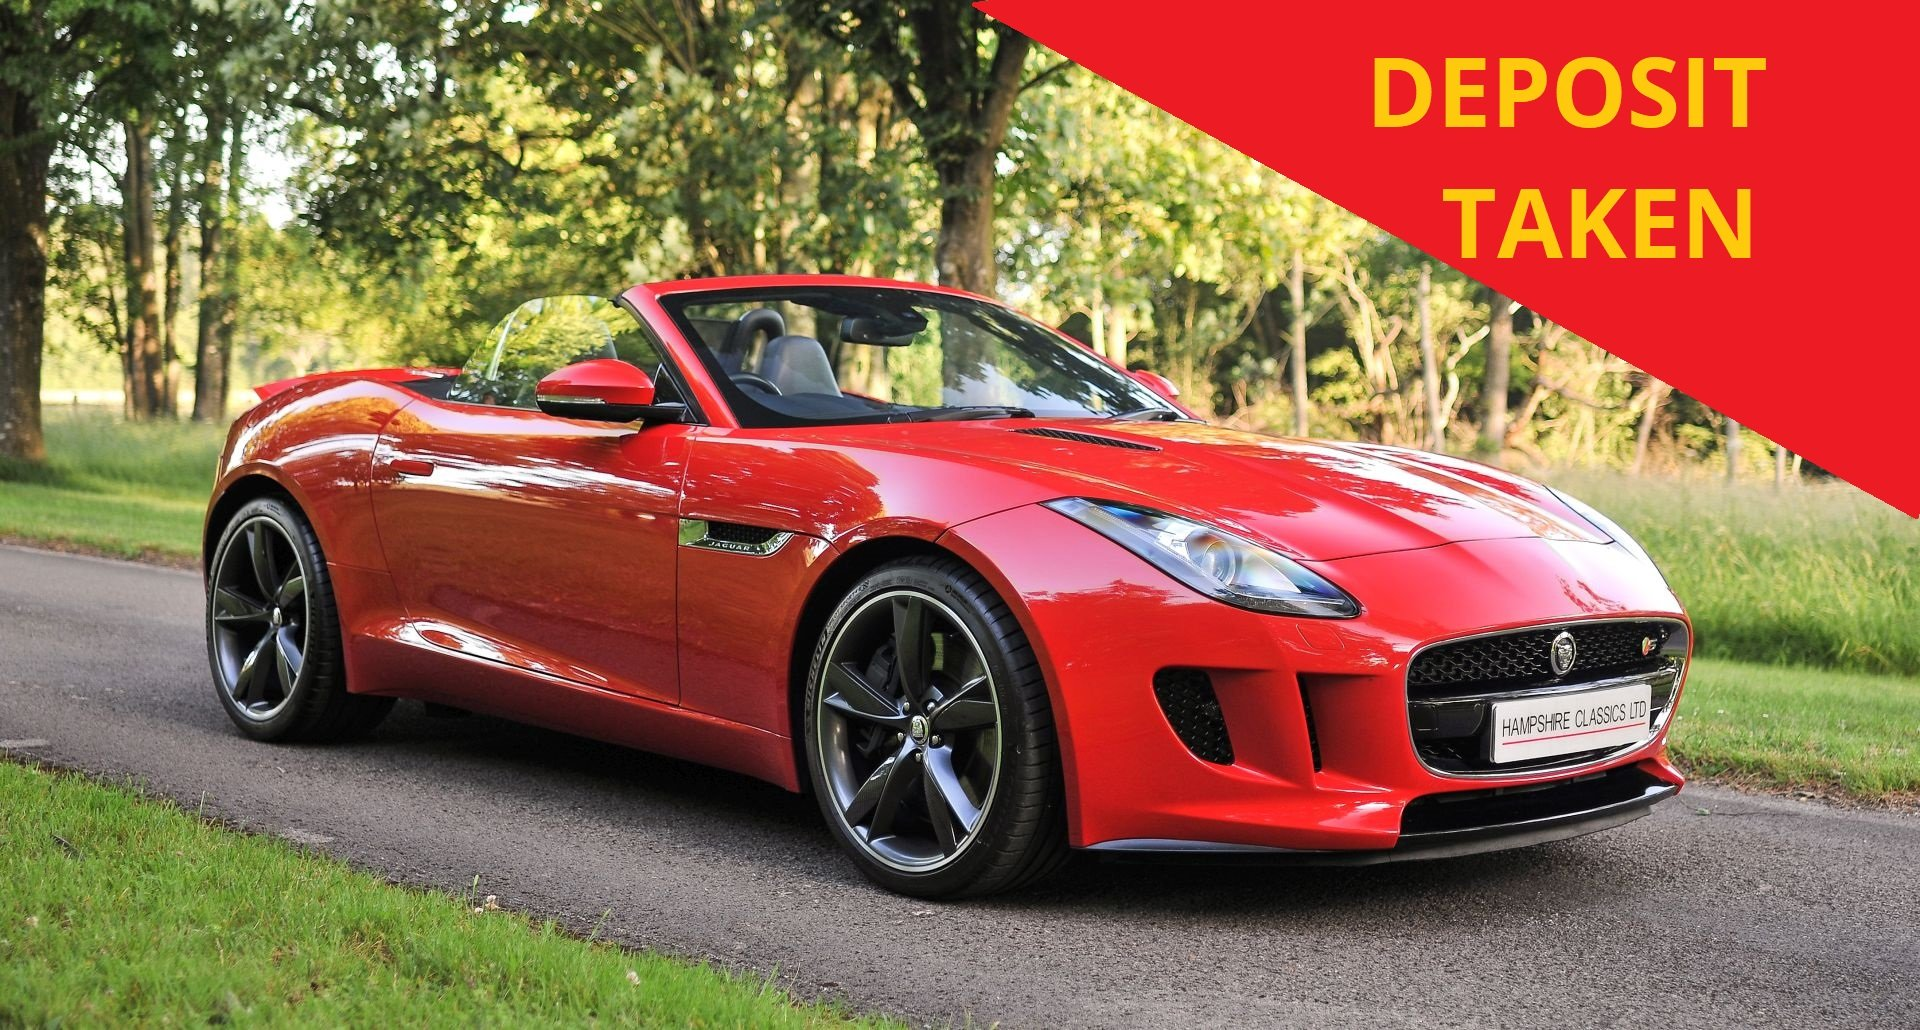 2014 Jaguar F-Type V6S Roadster (380PS) SOLD (picture 1 of 6)